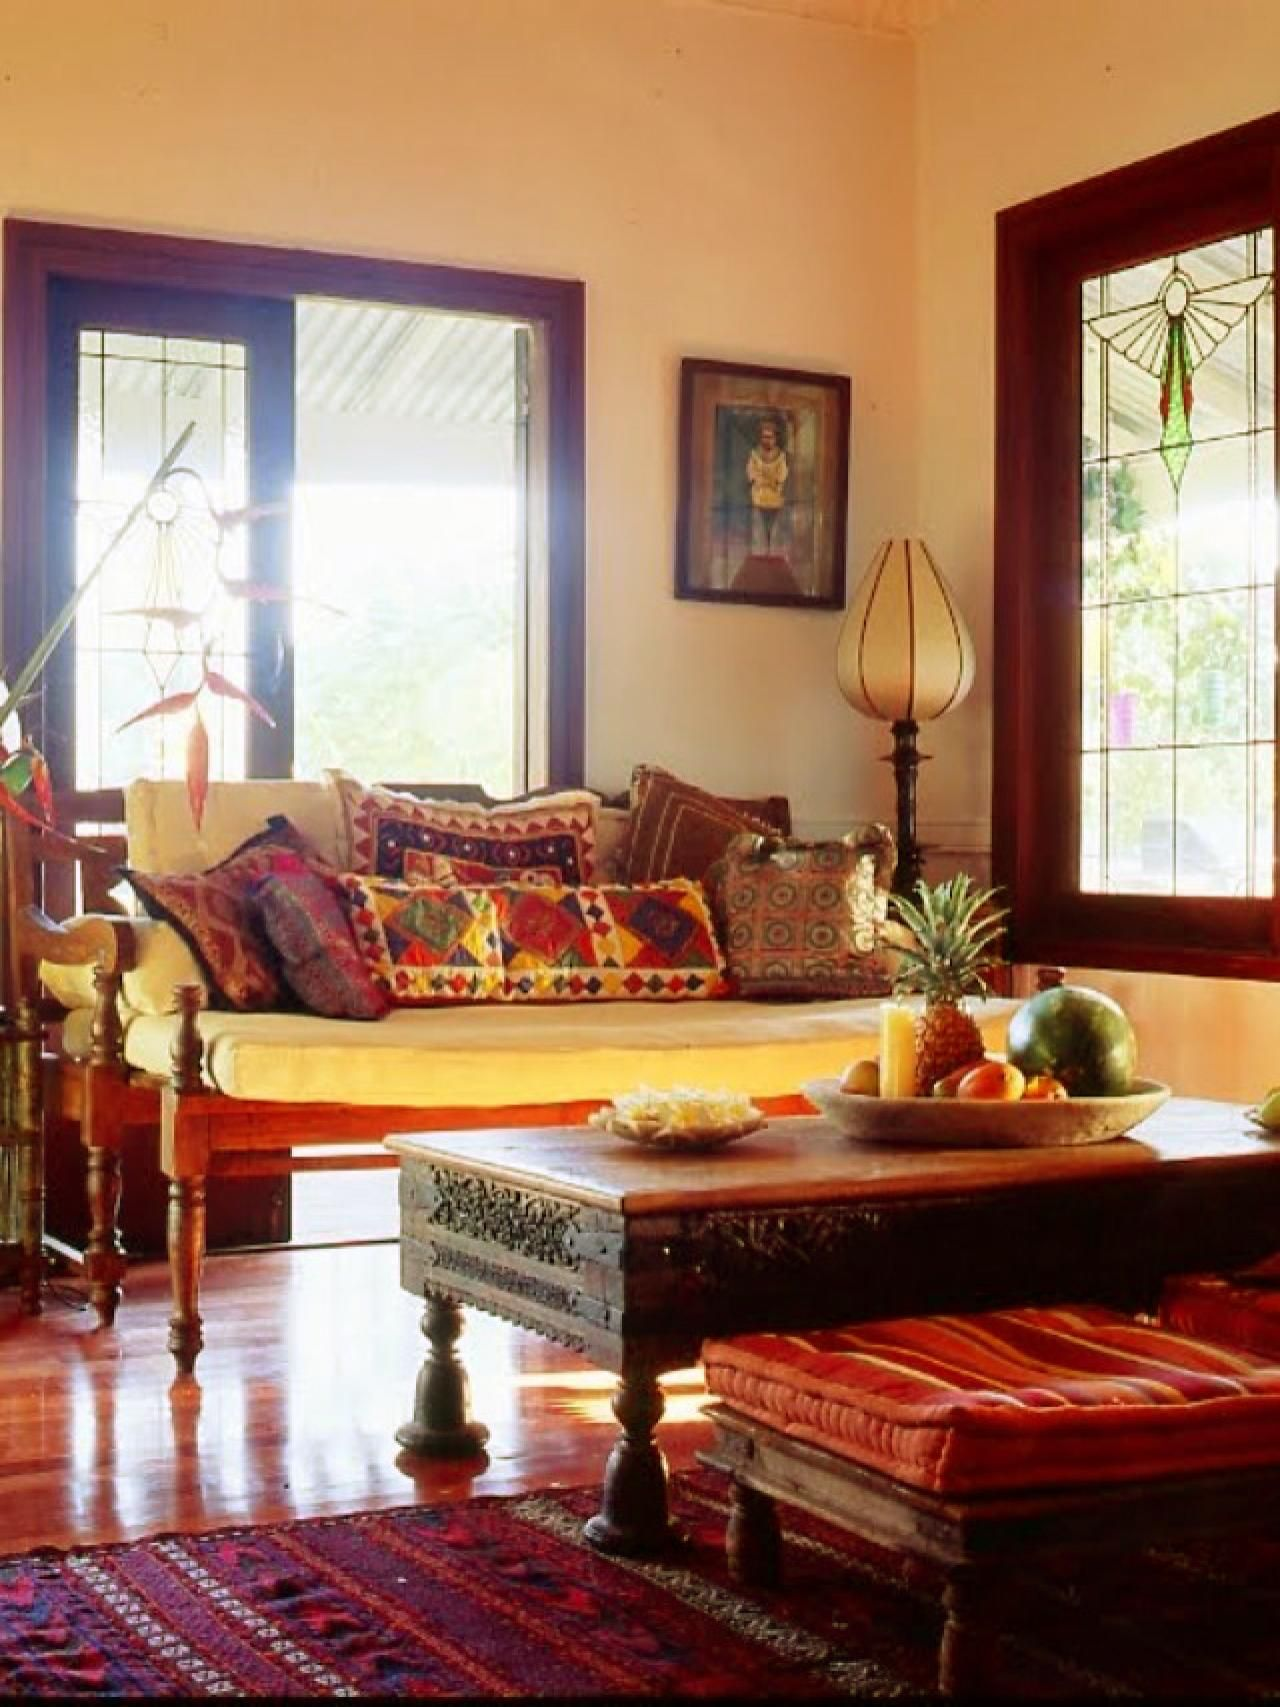 Living Room Decoration India Home Painting Ideas 12 Spaces Inspired By Indian Interior Design Styles And Color Schemes For Decorating Hgtv